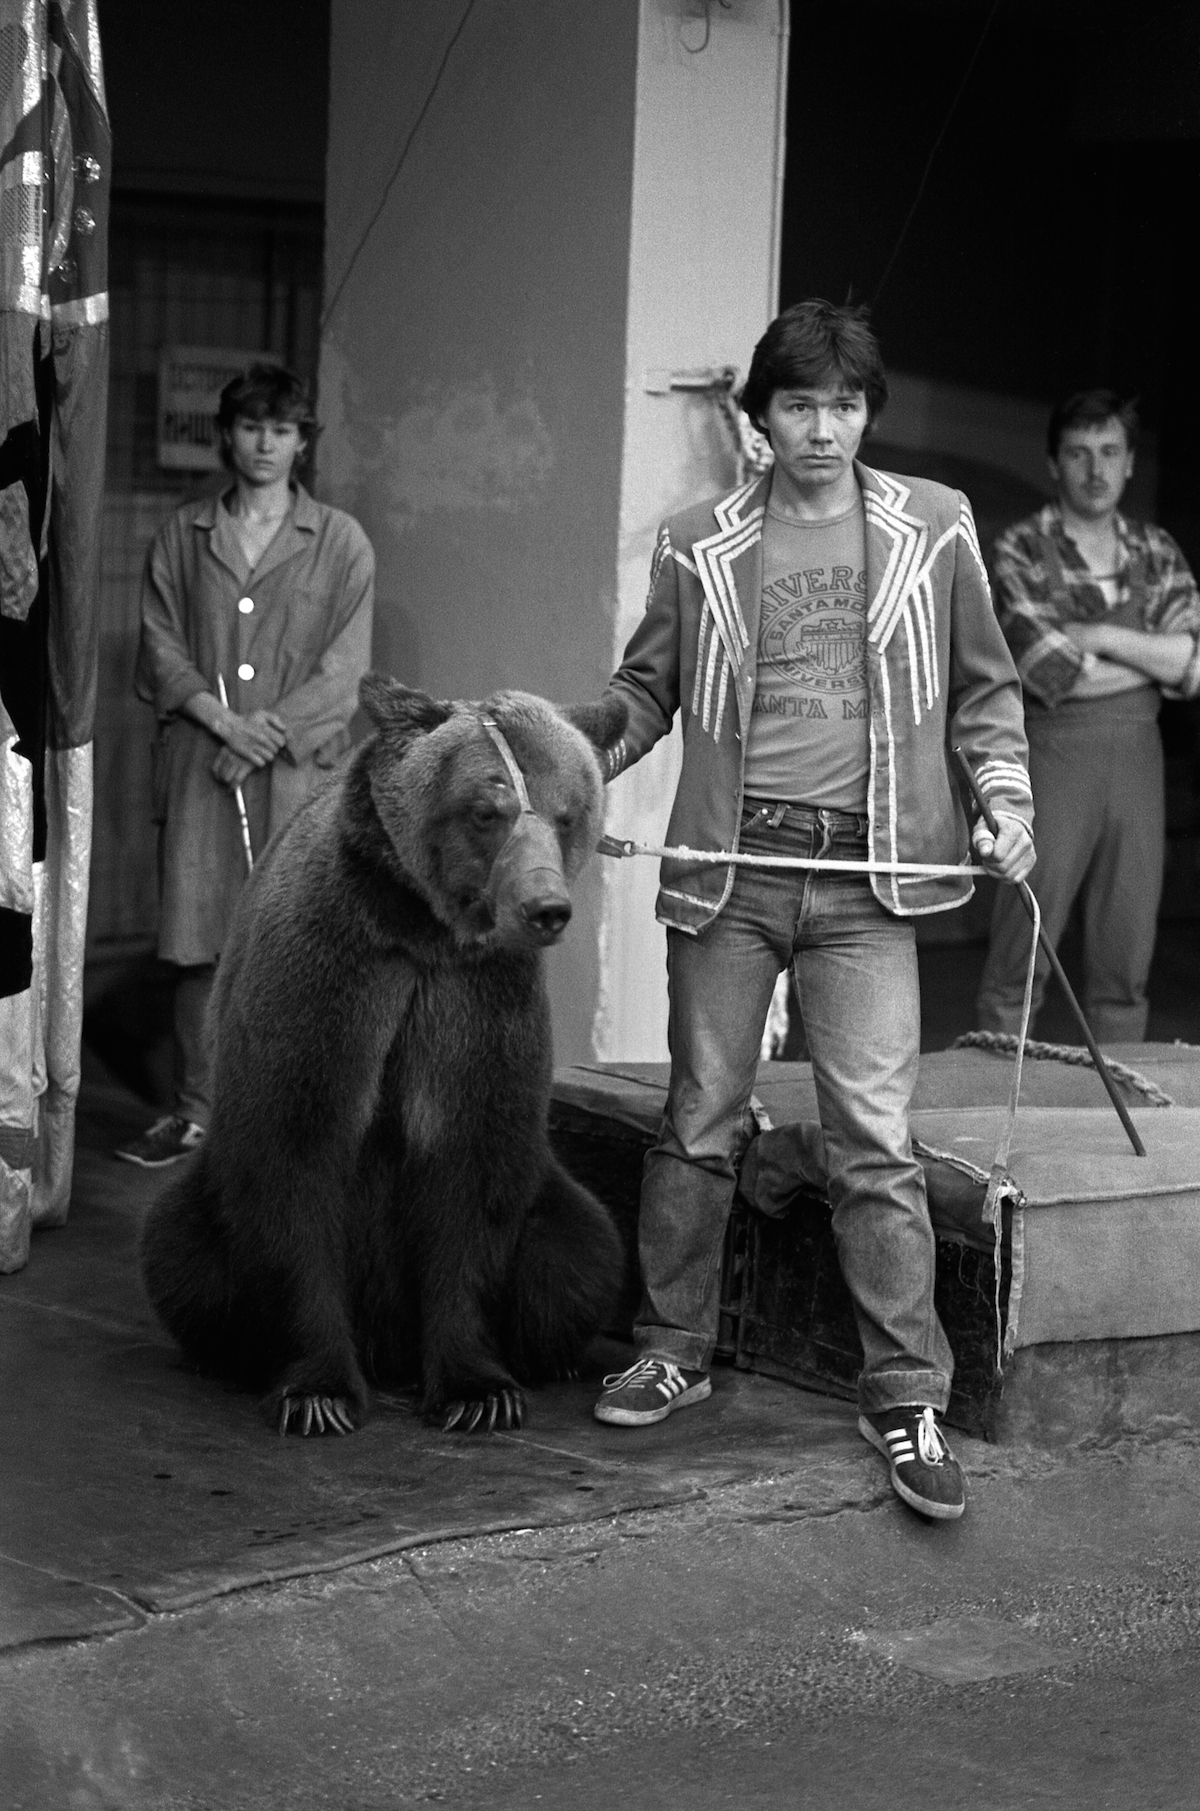 A man with a bear at the Soviet Moscow street. It was a decent attraction in the late 1980s.